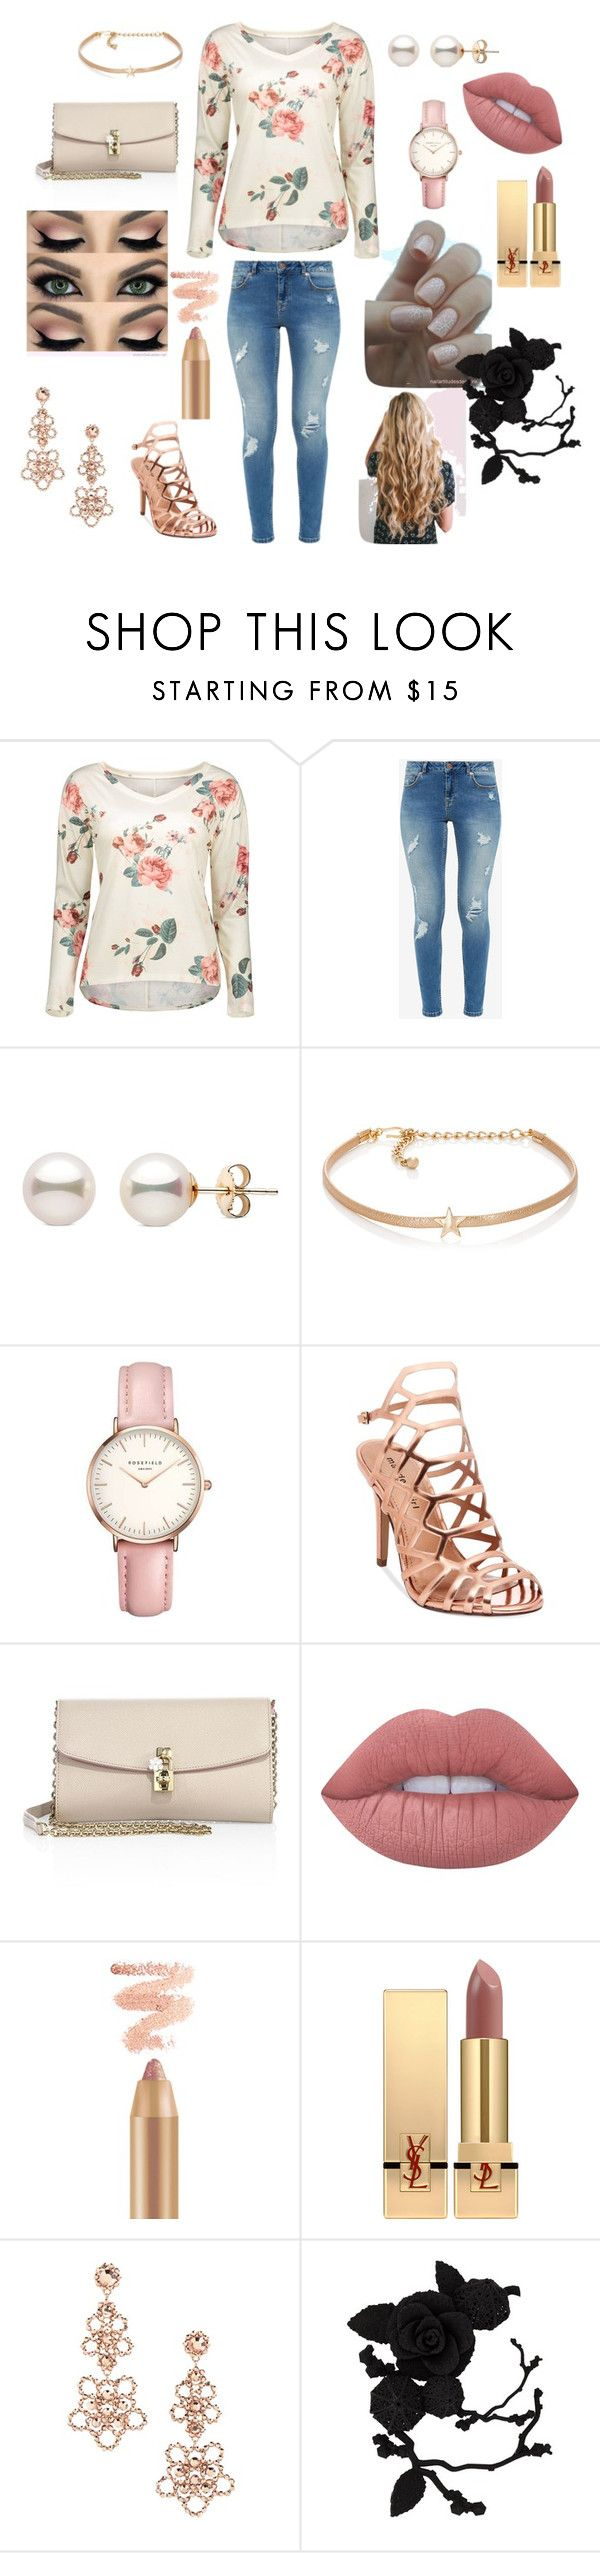 """Roses"" by die-ammy ❤ liked on Polyvore featuring Ted Baker, Kenneth Jay Lane, Topshop, Madden Girl, Dolce&Gabbana, Lime Crime, Yves Saint Laurent, Kate Spade and olgafacesrok"